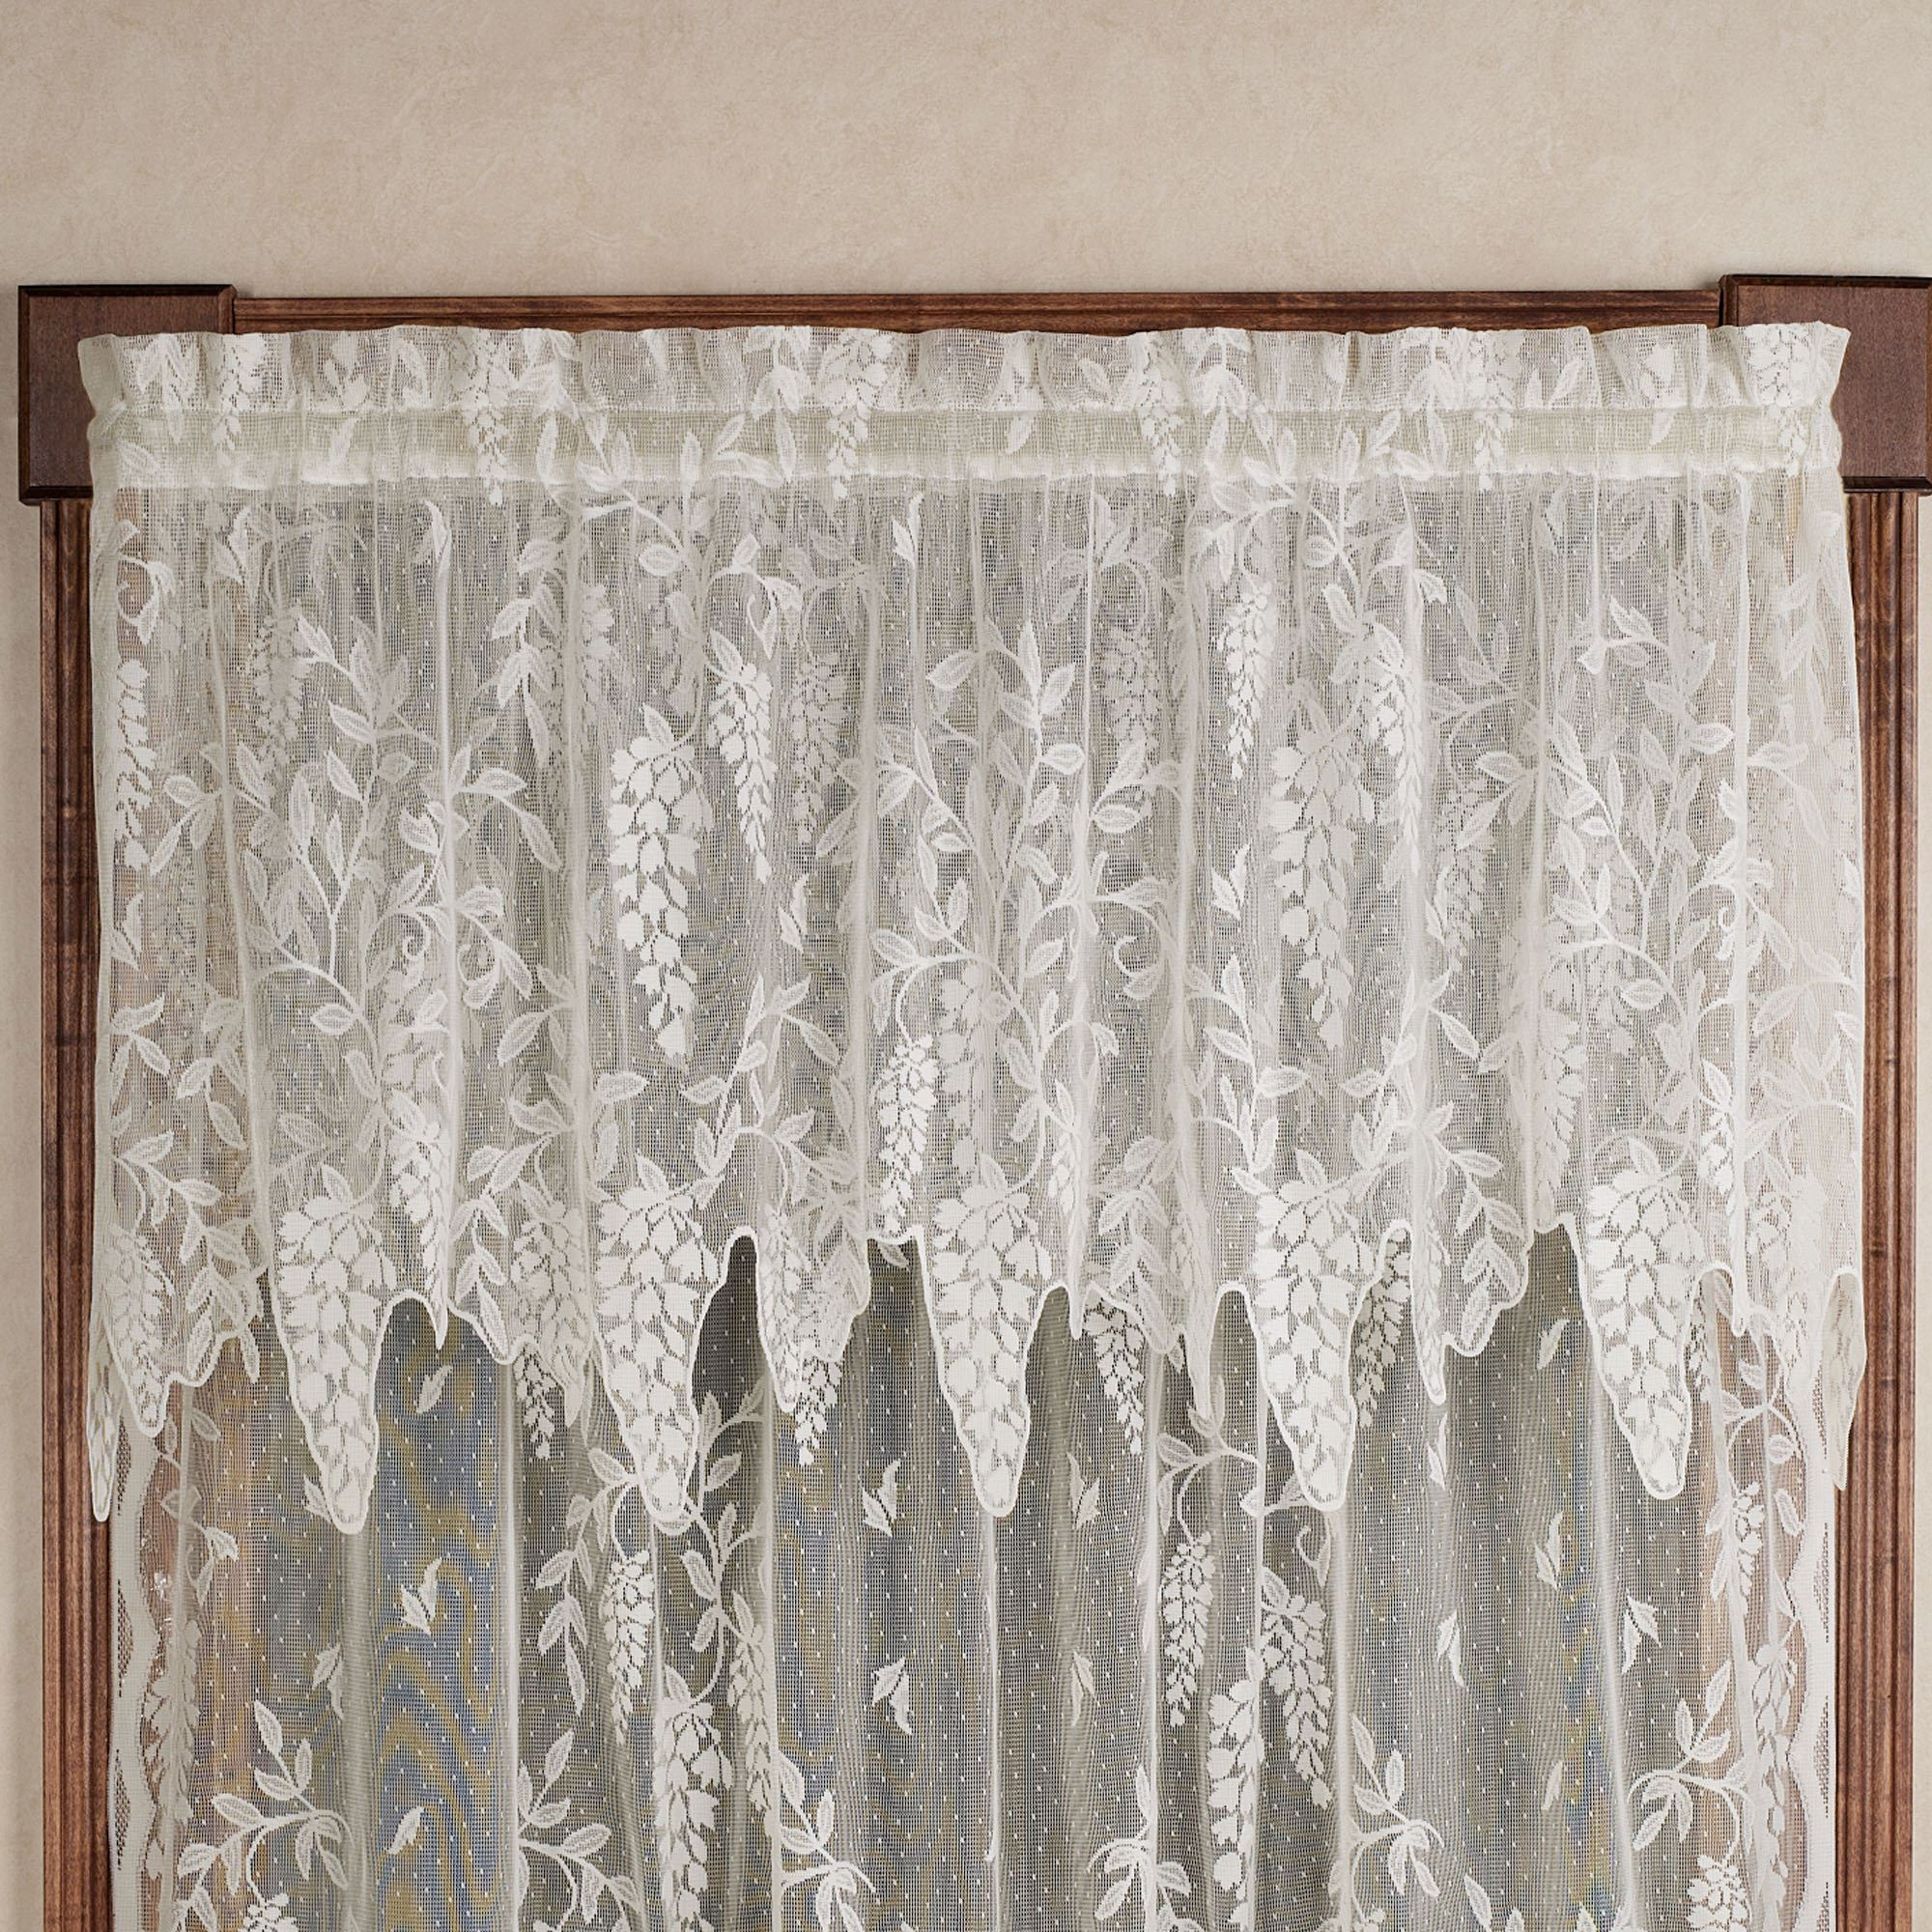 tie in belgian home l valance abelia panel lace curtains top flax sheer curtain linen sj val best ivory fashion p drapes